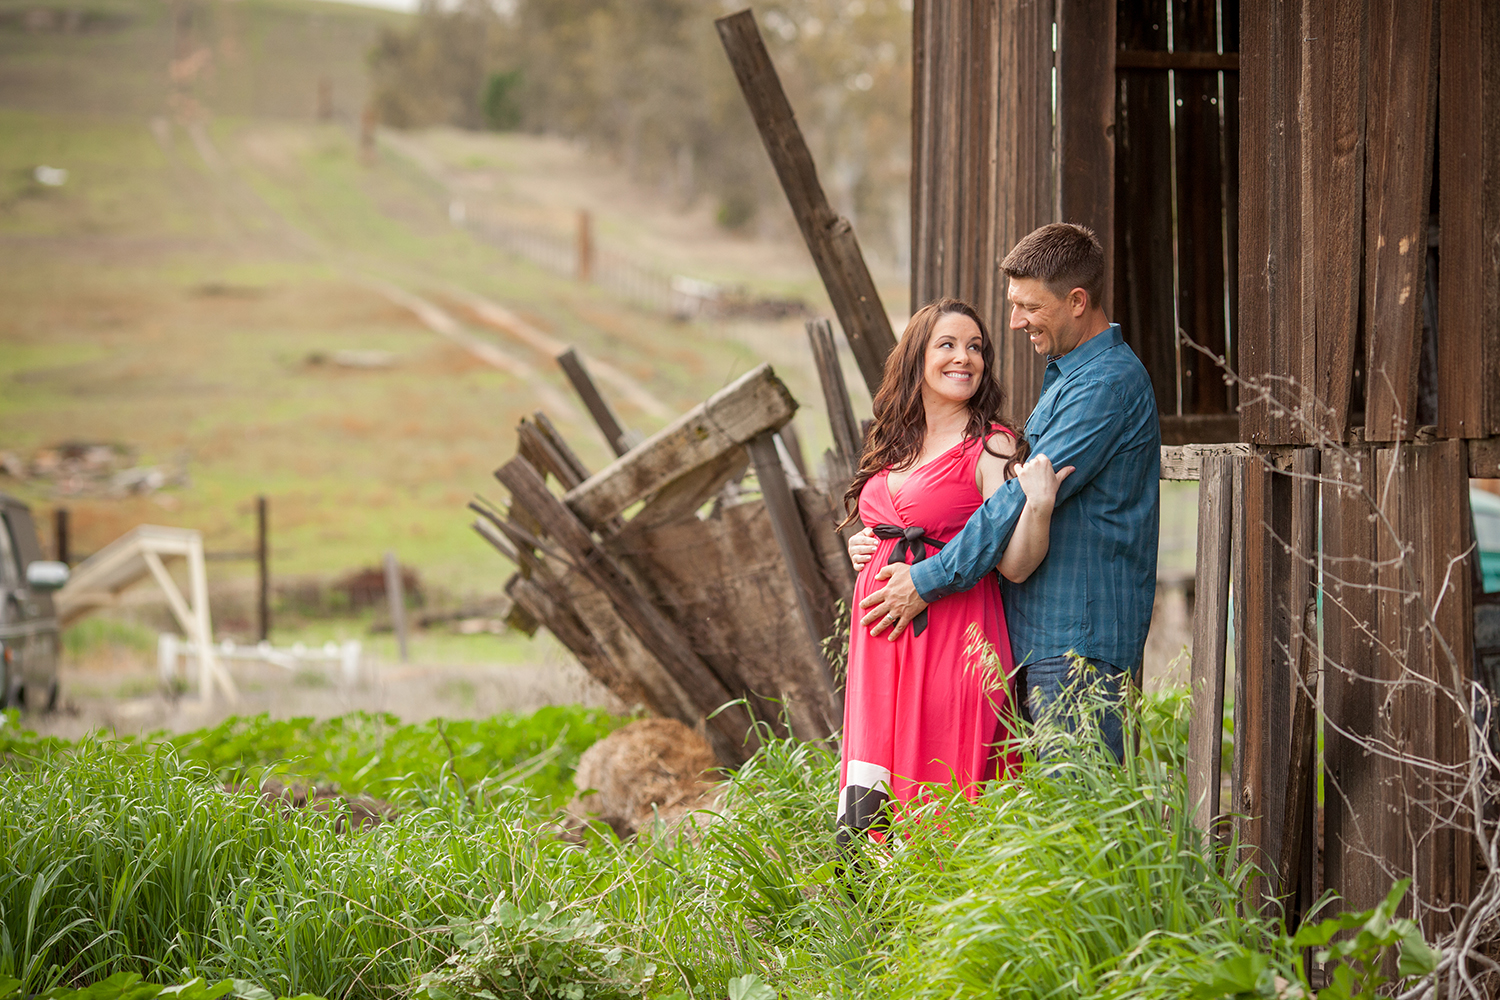 Dena_Rooney_Maternity_Portraits_060.jpg